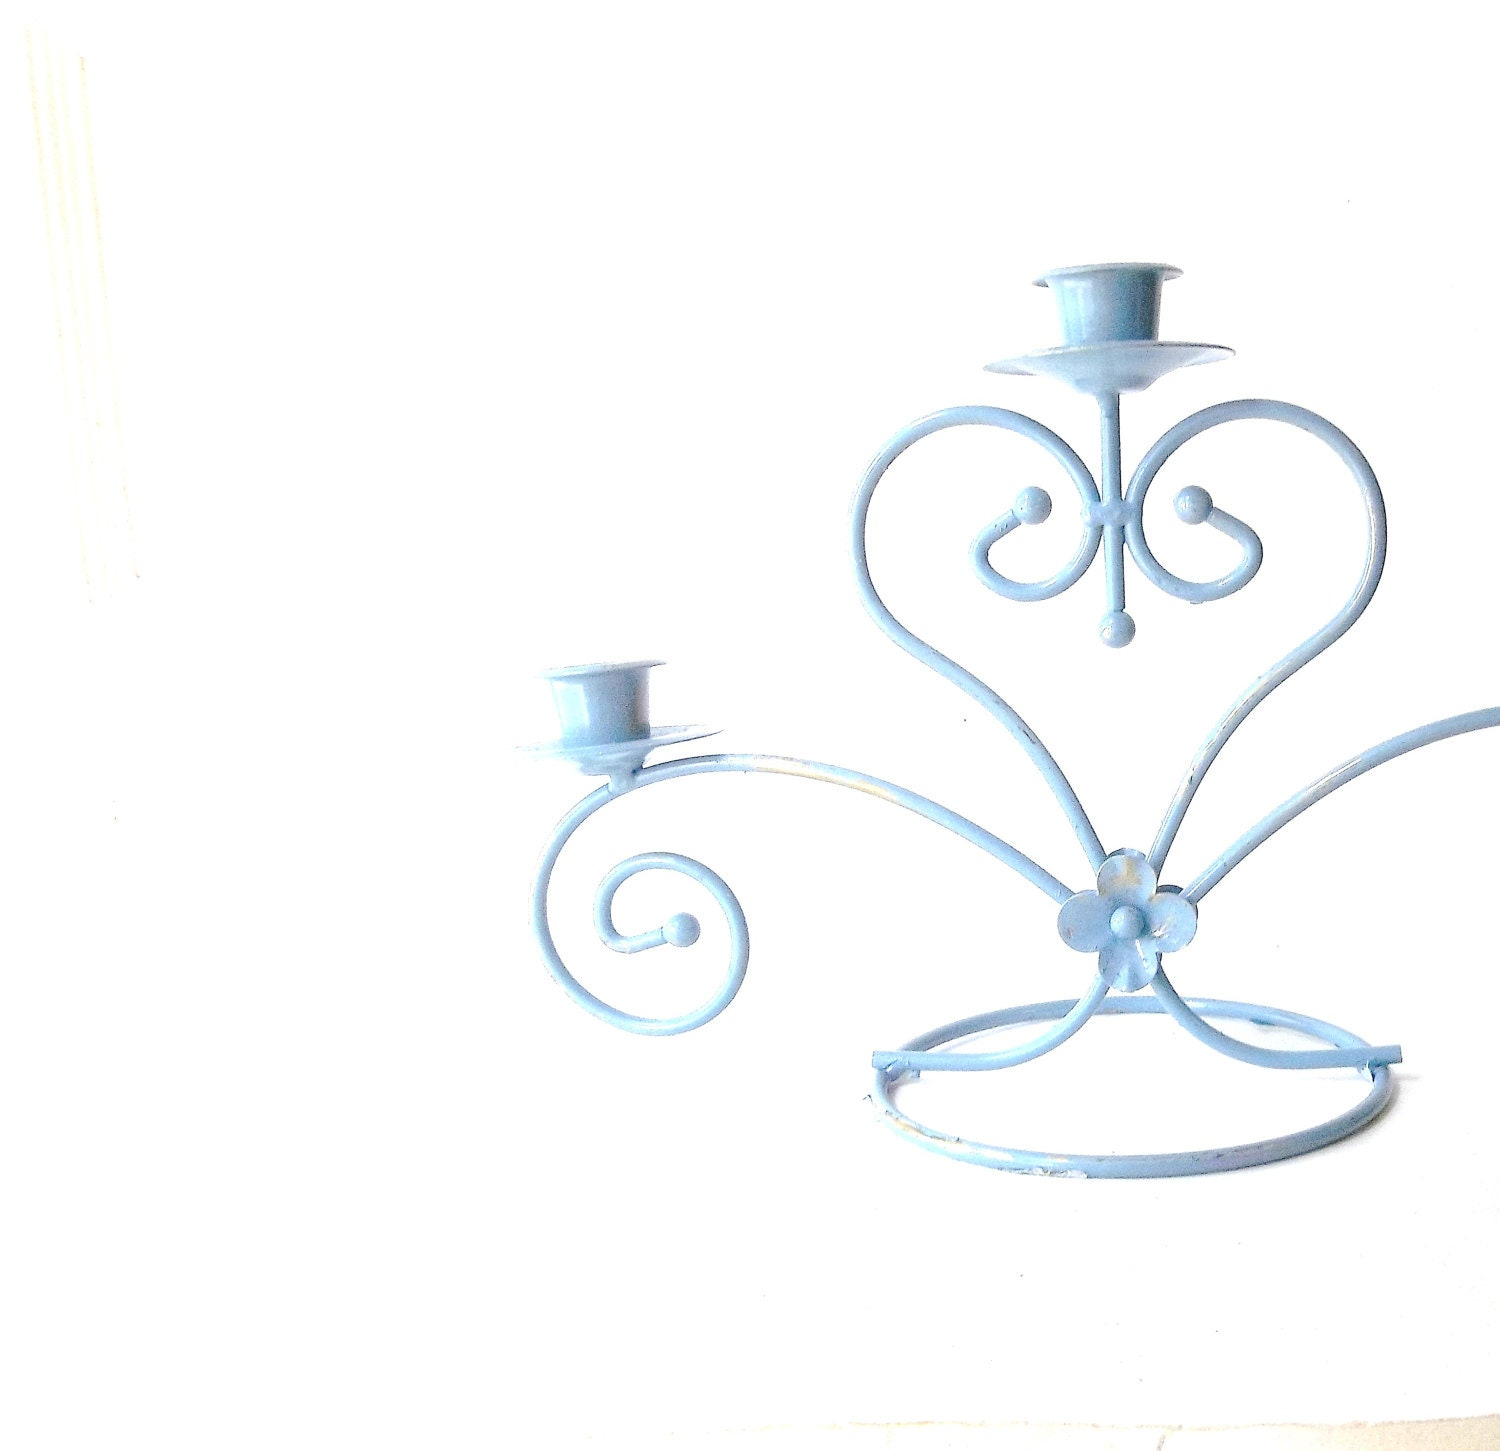 Vintage Candlelabra. CandleHolder. French Shabby Chic Blue. Wrought Iron Metal Heart. Cottage Chic Decor